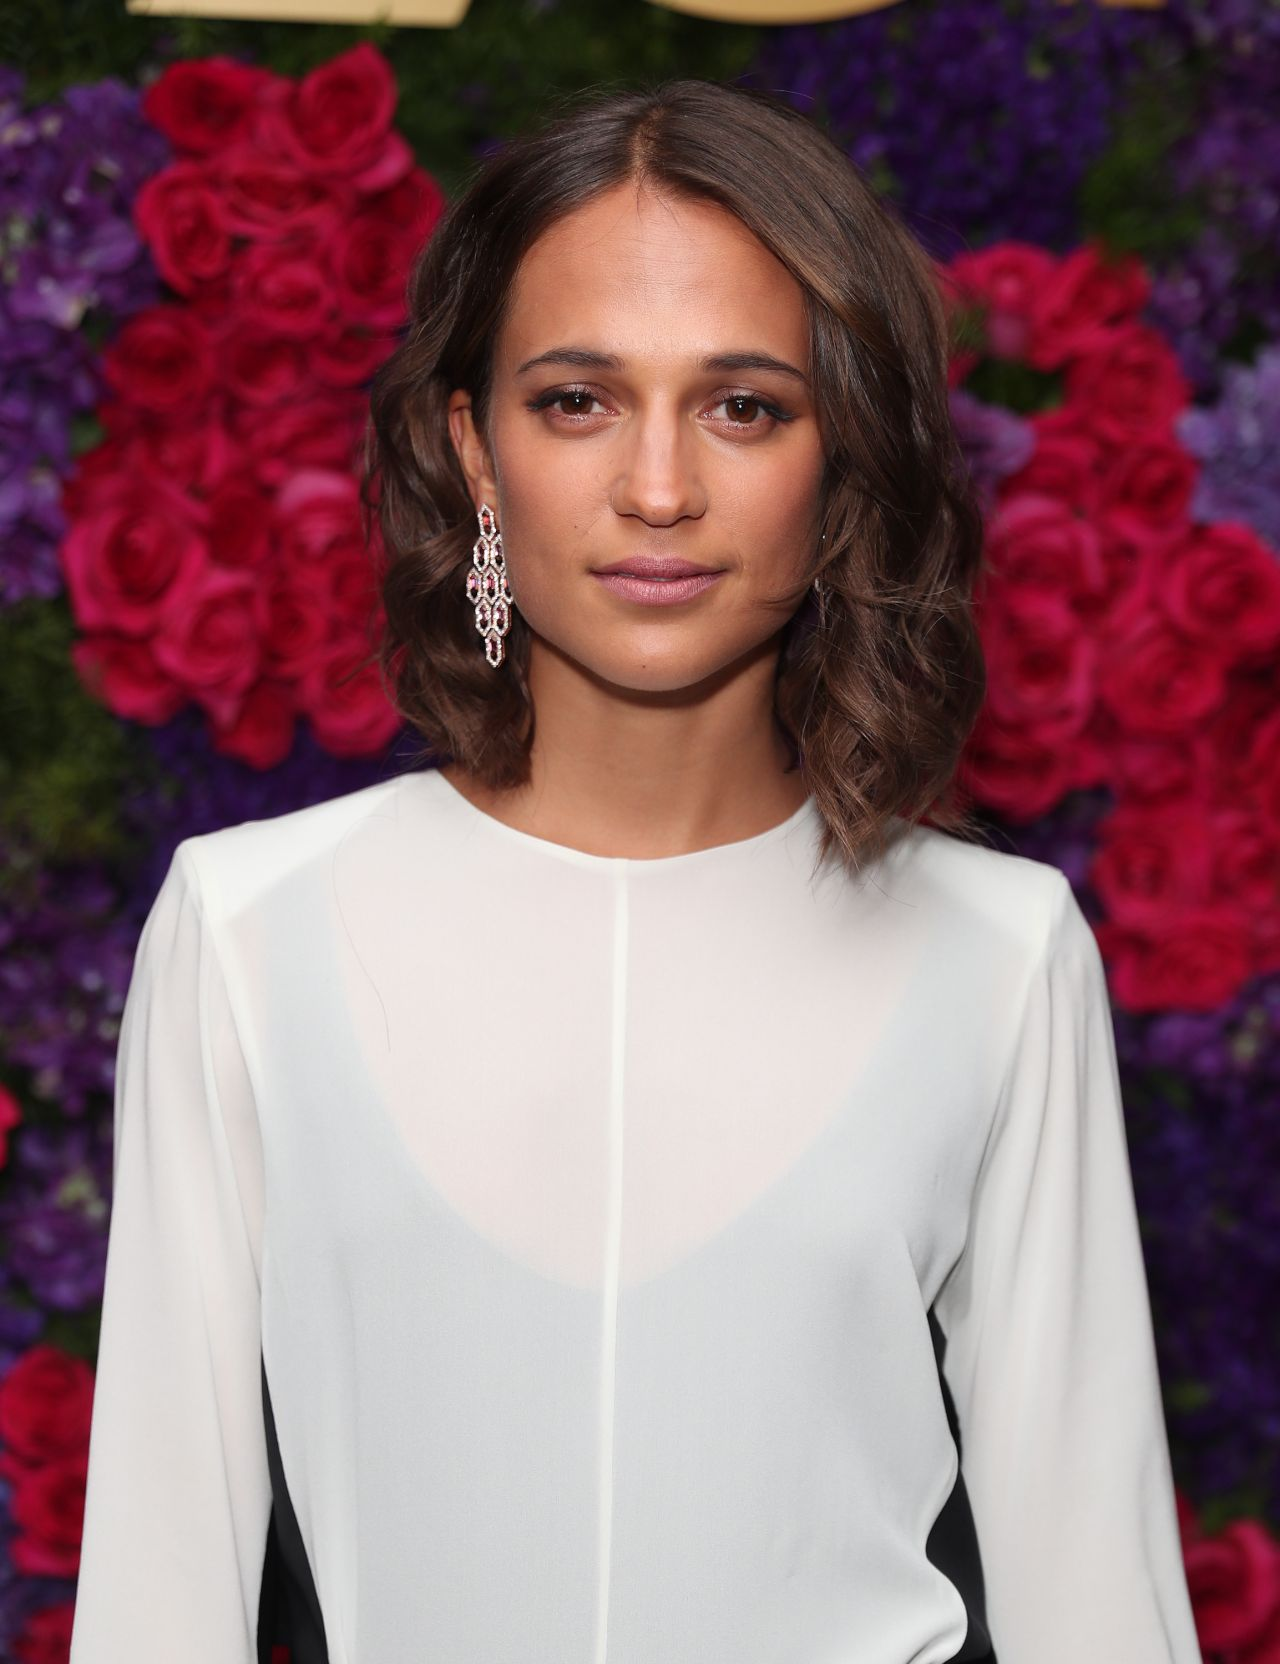 Alicia Vikander nude (27 photos) Selfie, Facebook, braless